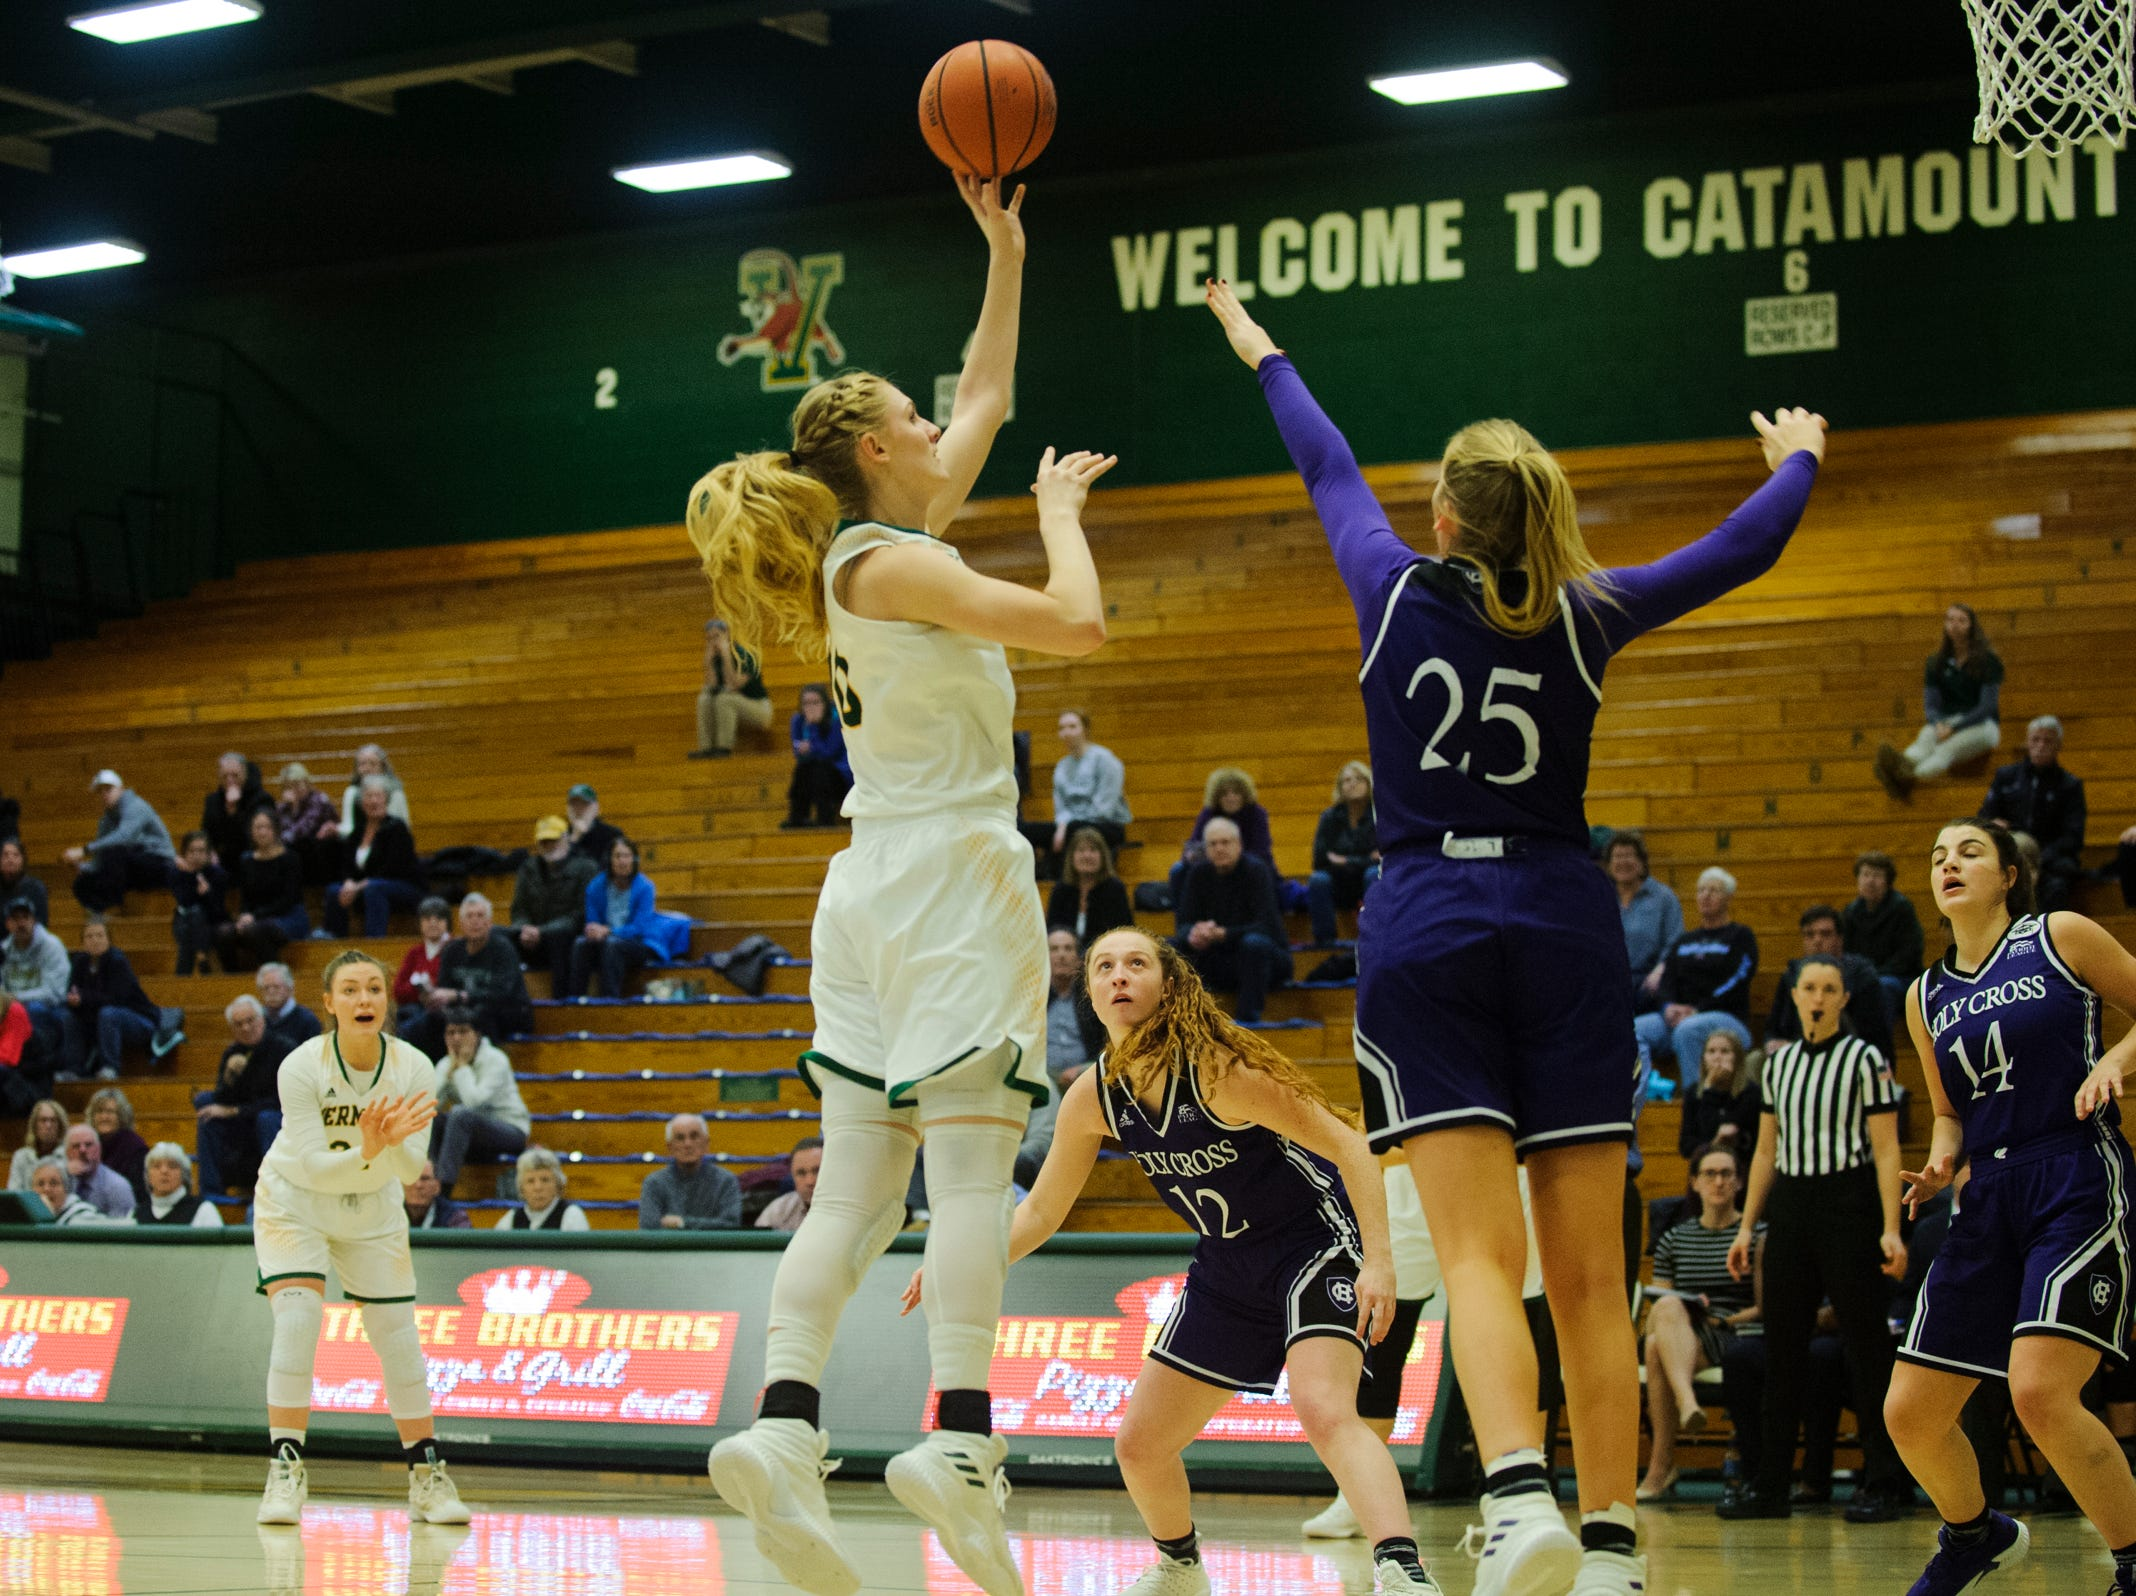 Vermont's Hannah Crymble (10) leaps to shoot the ball during the women's basketball game between the Holy Cross Crusaders and the Vermont Catamounts at Patrick Gym on Wednesday night November 28, 2018 in Burlington.